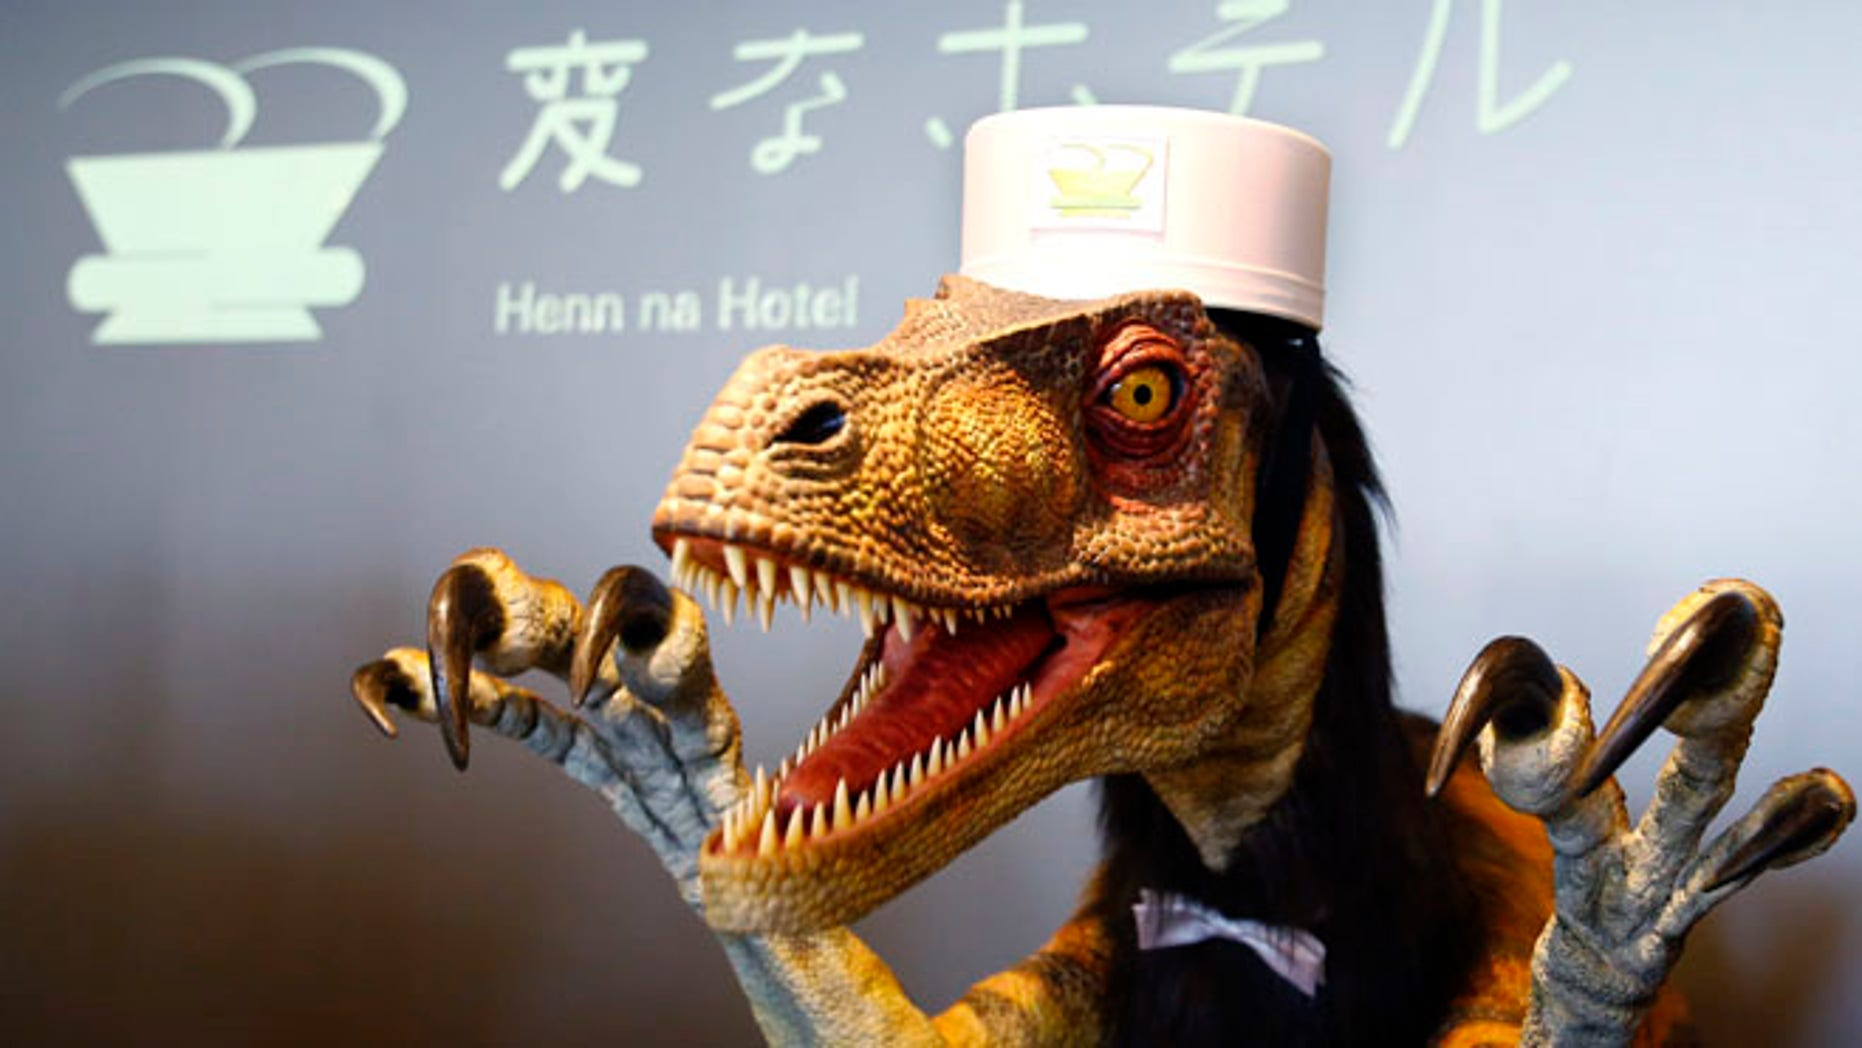 A receptionist dinosaur robot performs at a new hotel, aptly called Henn na Hotel or Weird Hotel, in Sasebo, southwestern Japan.